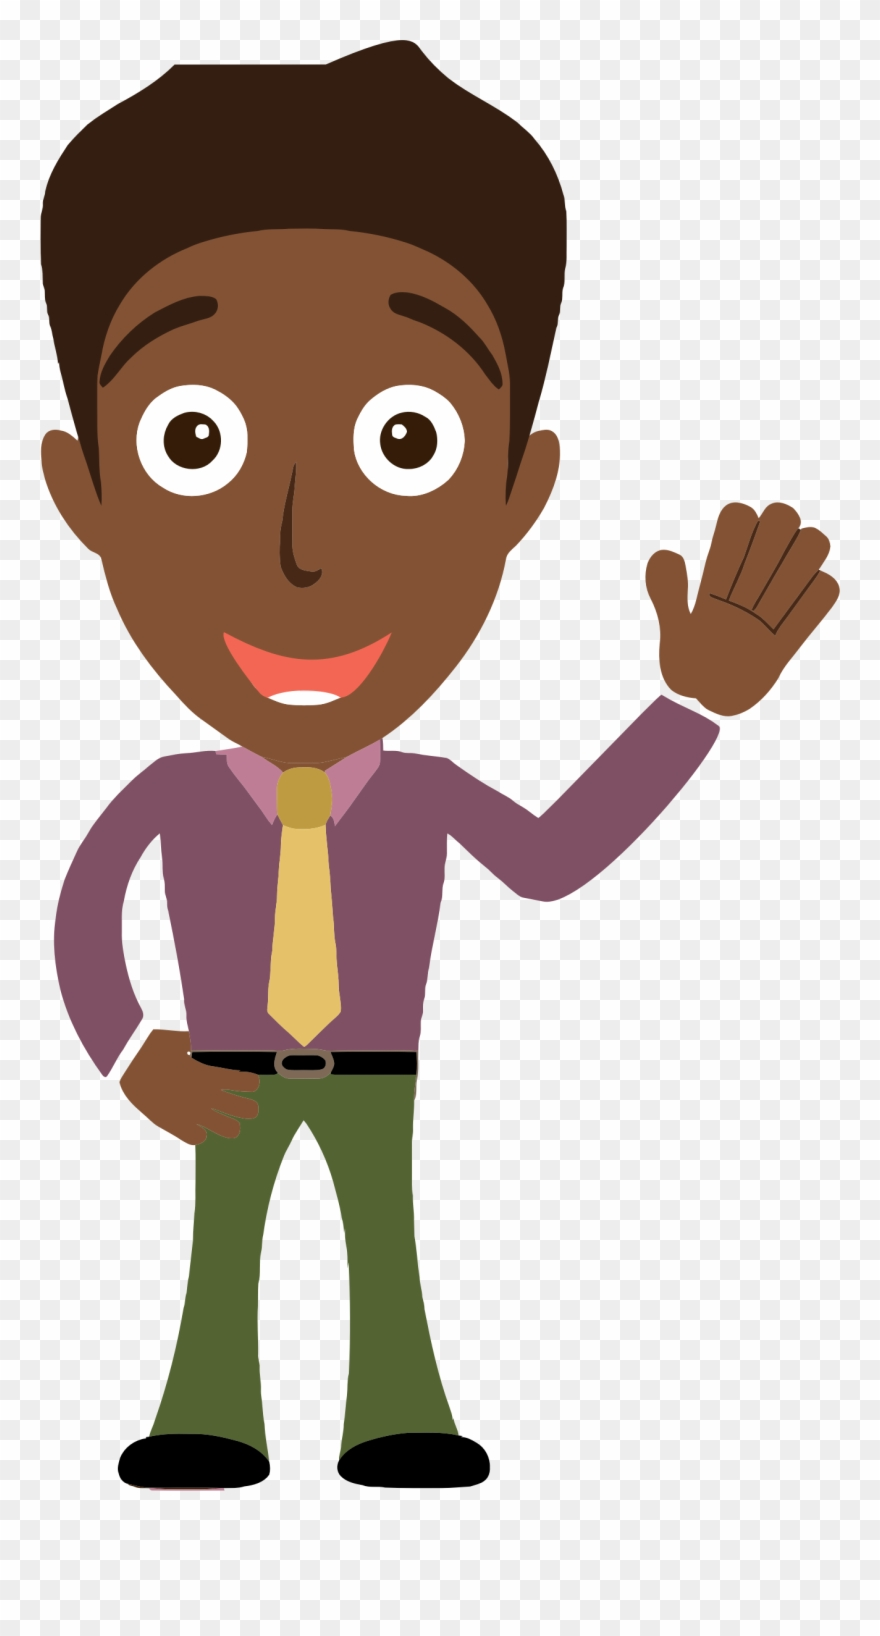 hight resolution of sensational idea person clip art clipart cartoon man saying hello png download